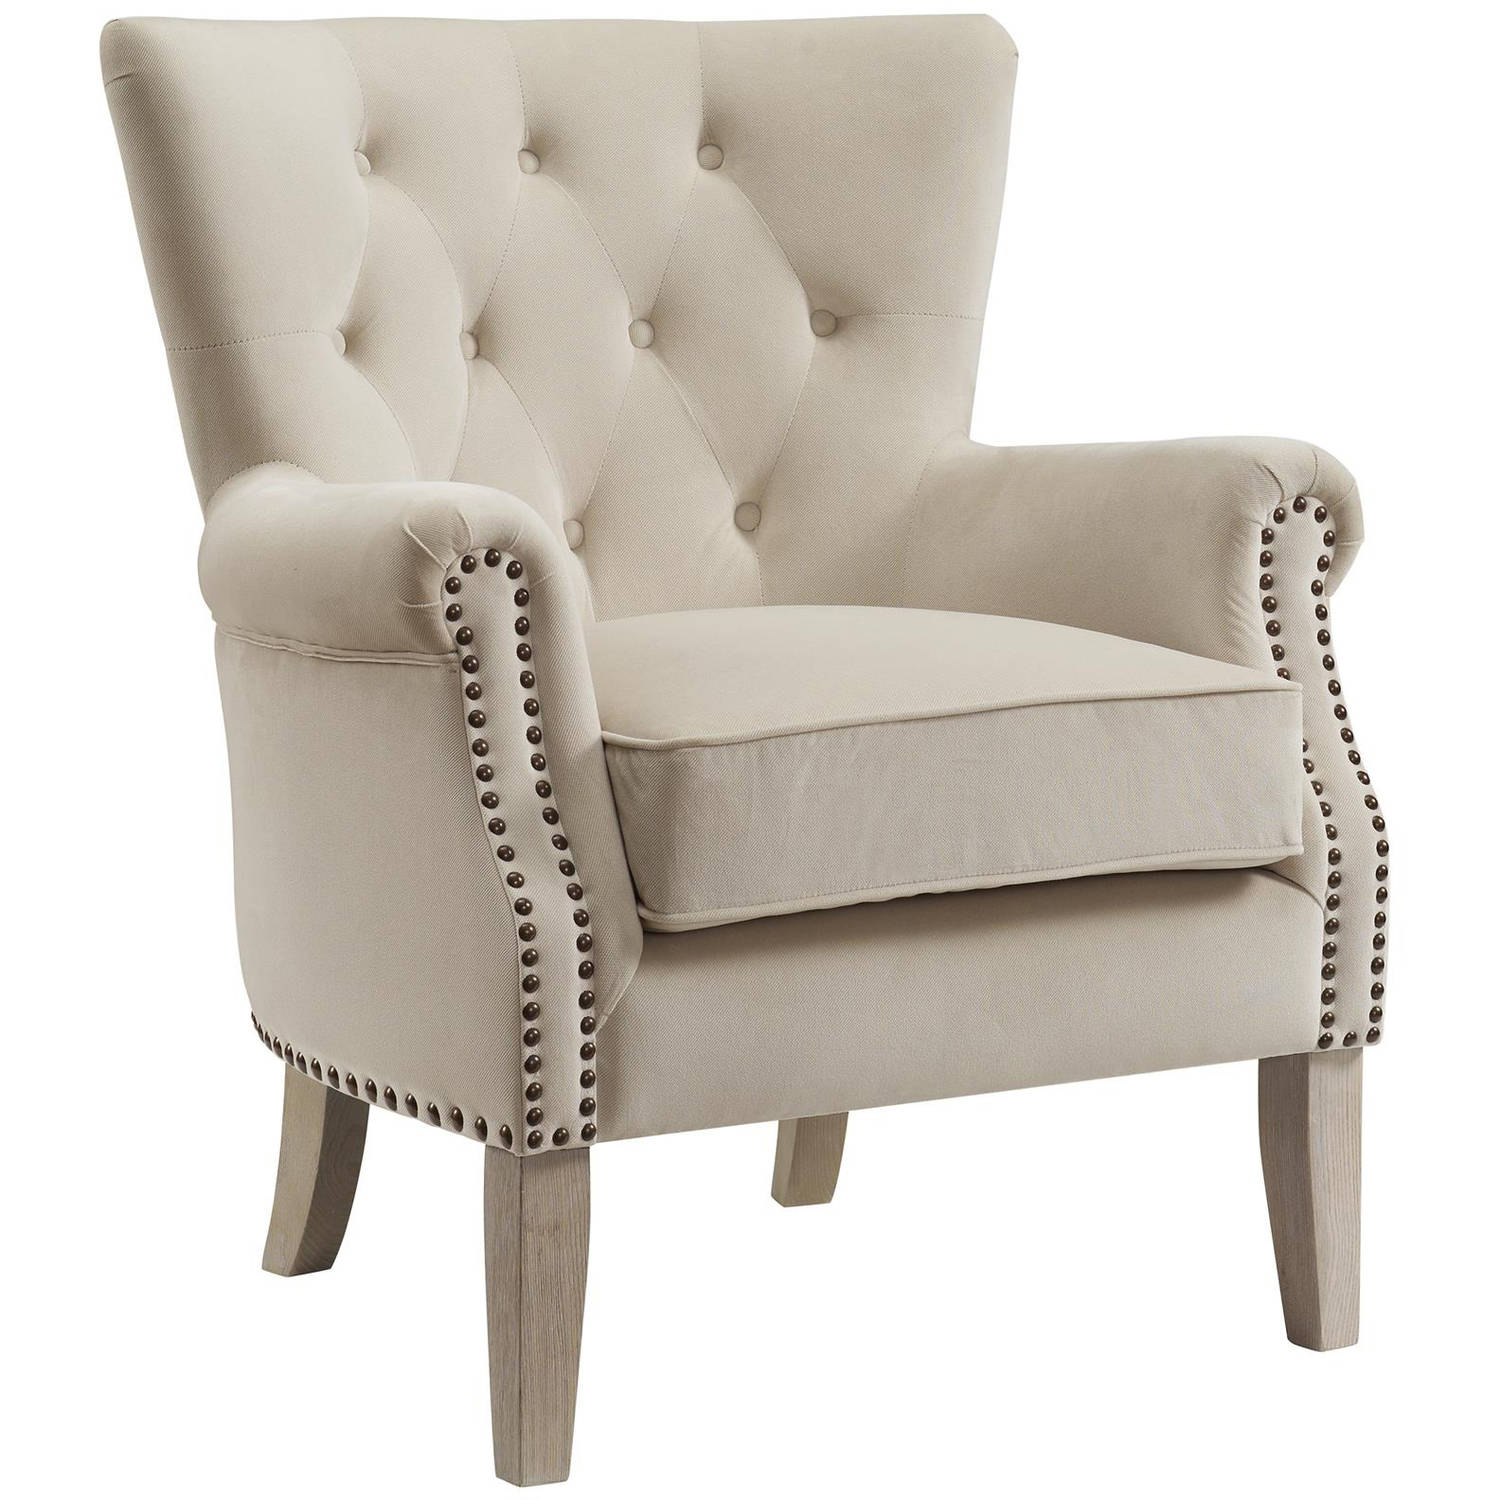 Living Room Chairs - Living Room Furniture Walmart.com